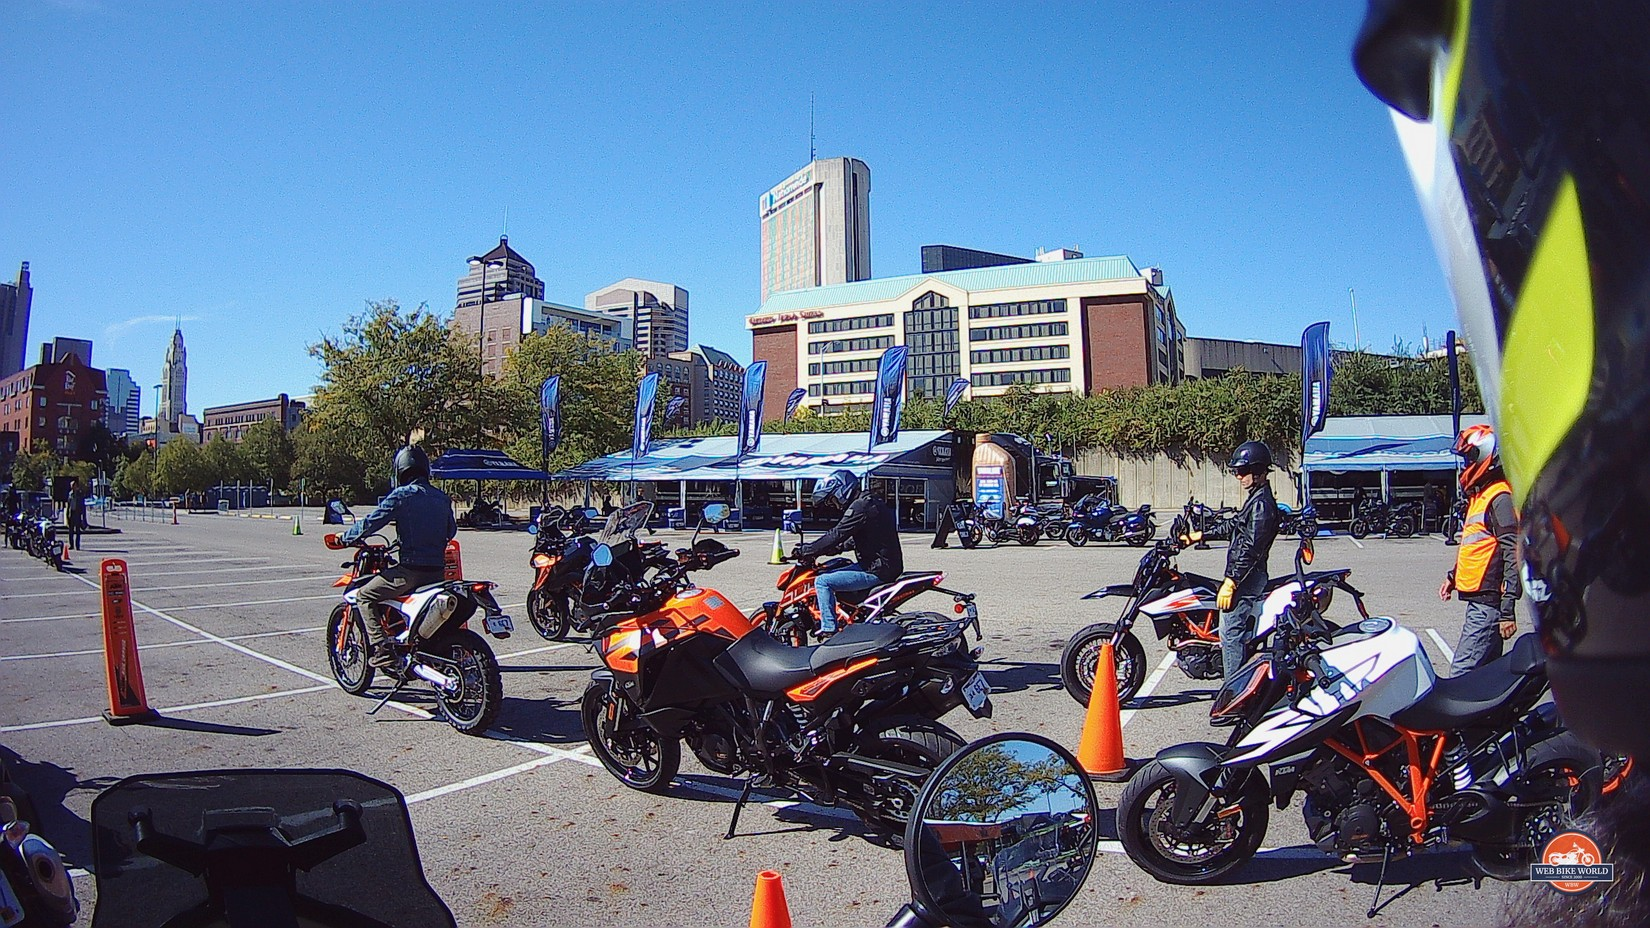 Photo taken of KTM demo motorcycles by the Sena 10C Pro.